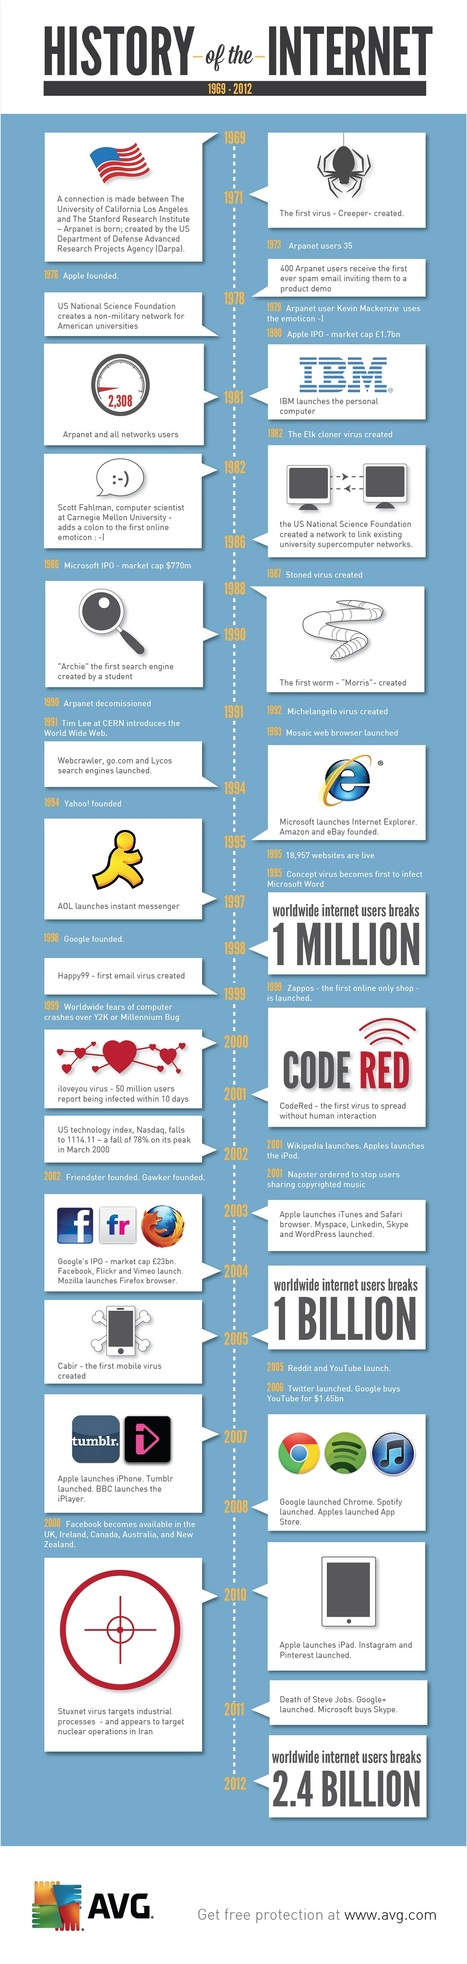 Milestones in the History of the Internet [Infographic] | Business and News | Scoop.it